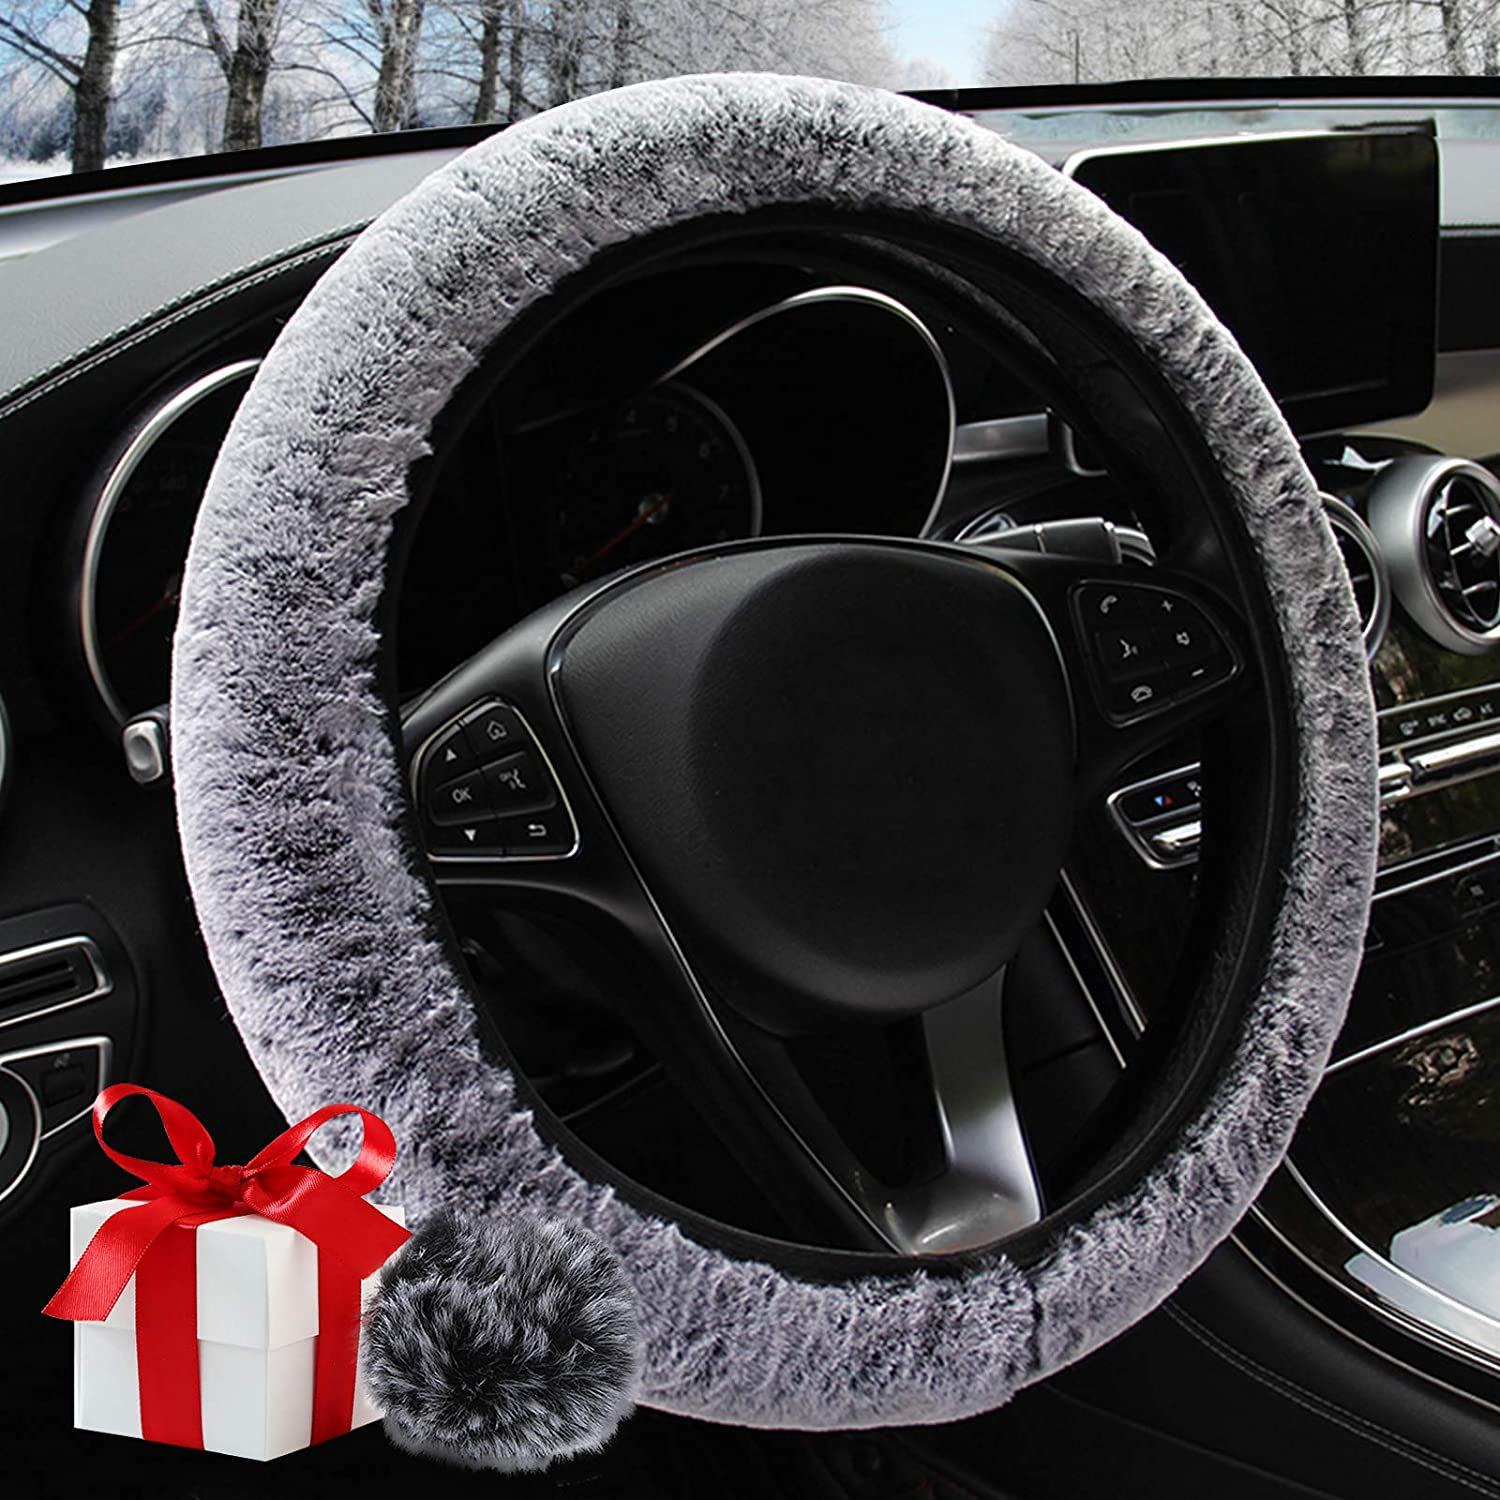 Fluffy Steering Wheel Cover,Fuzzy Steering Wheel Cover with Fur Pom Pom Keychain,Winter Warm, Universal, Anti-Slip, Gray